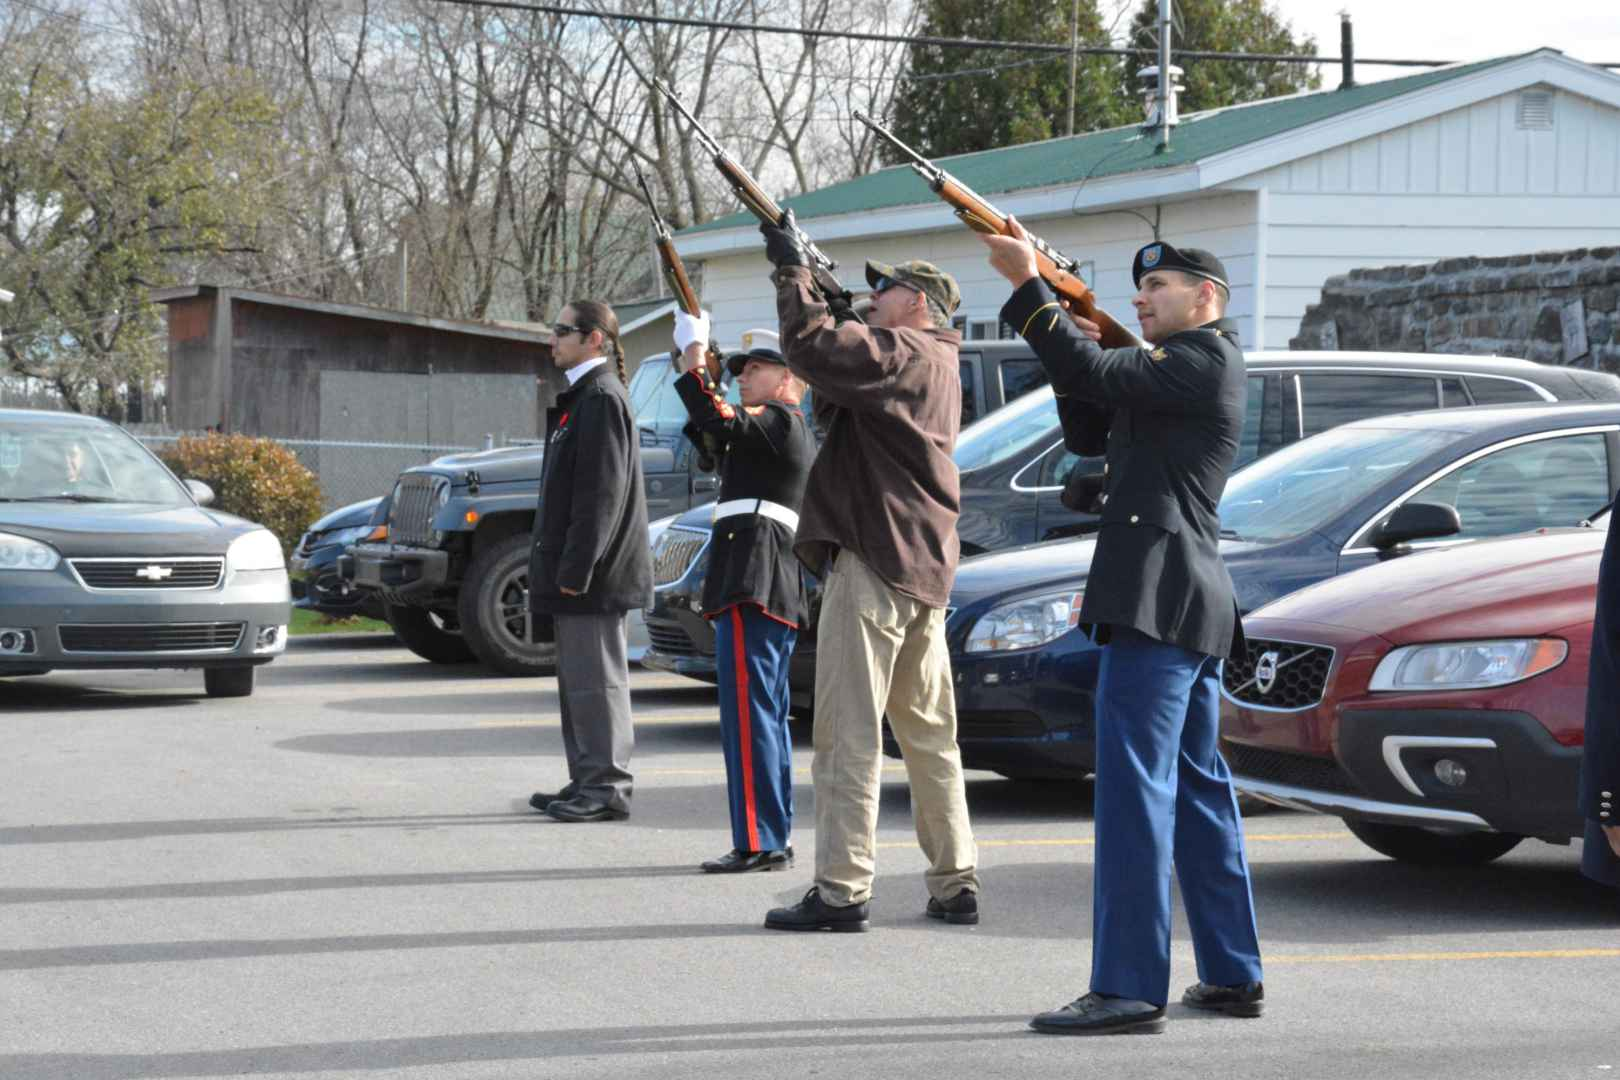 The flags were lowered to half-staff in respect of all fallen soldiers, then raised again. Community members held their ears as the Branch 219 rifle squad conducted a rifle salute. (Jessica Deer, The Eastern Door)